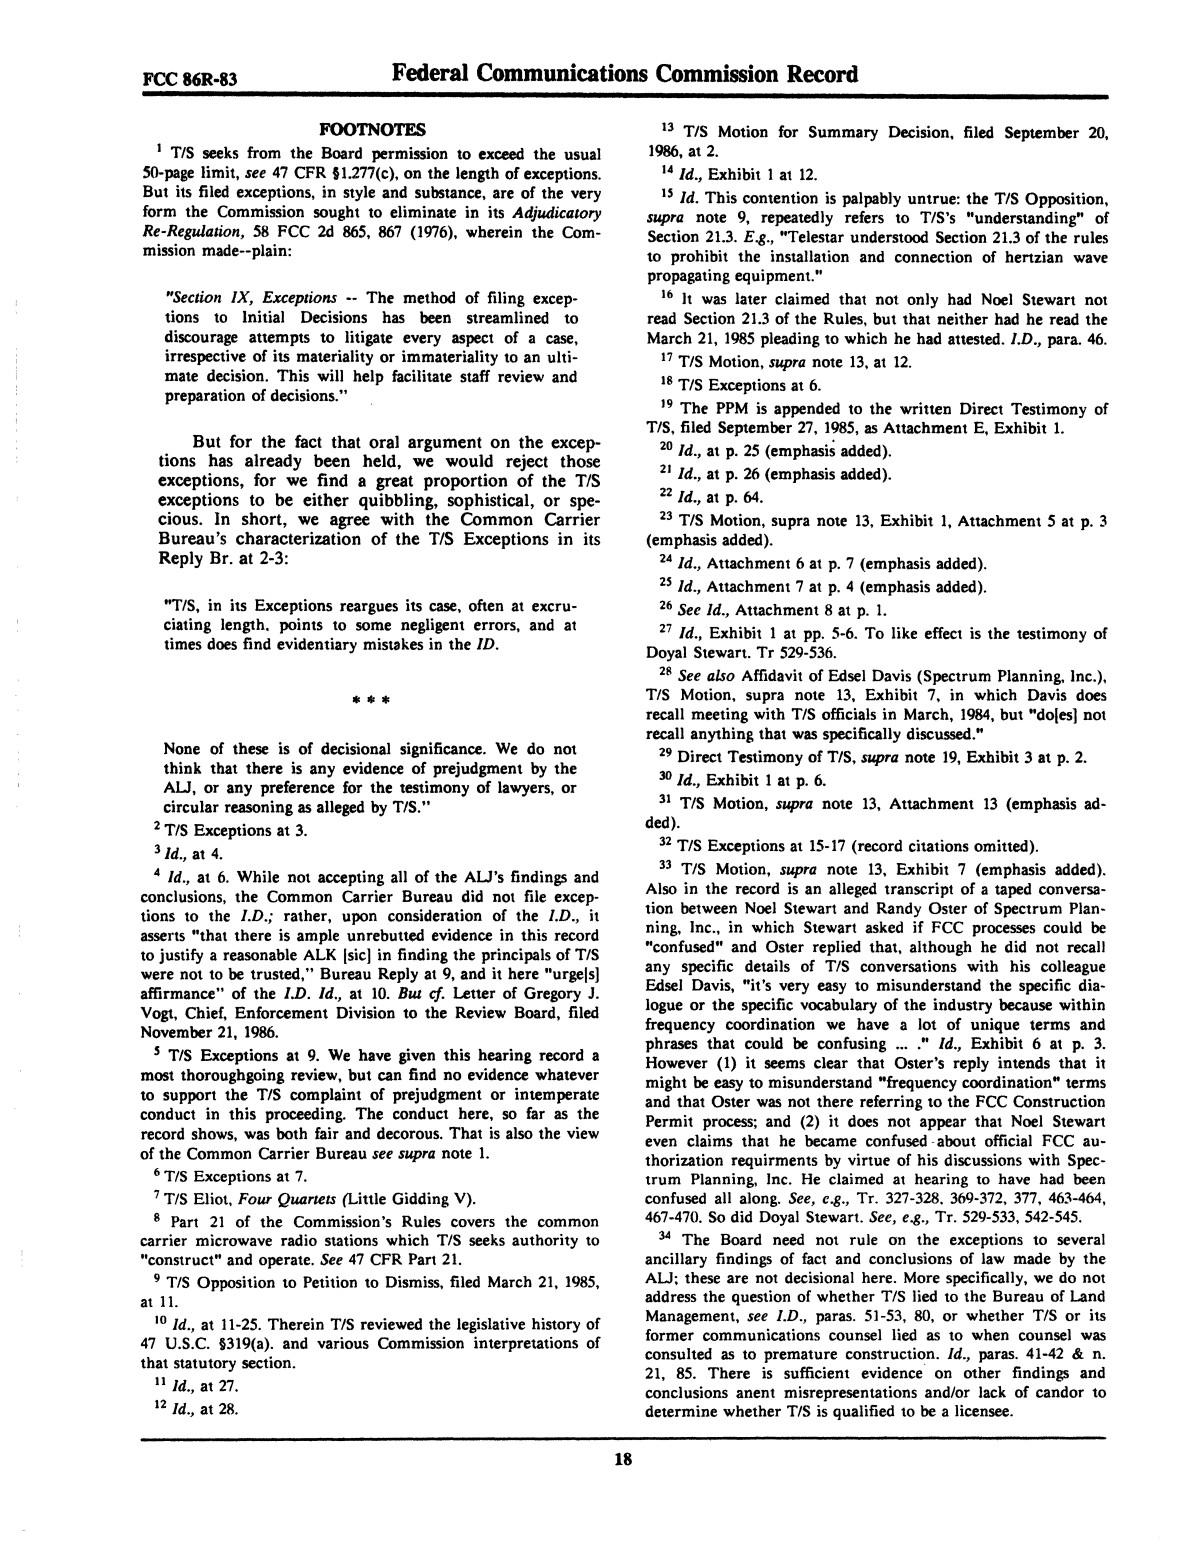 FCC Record, Volume 2, No. 1, Pages 1 to 409, January 5 - January 16, 1987                                                                                                      18